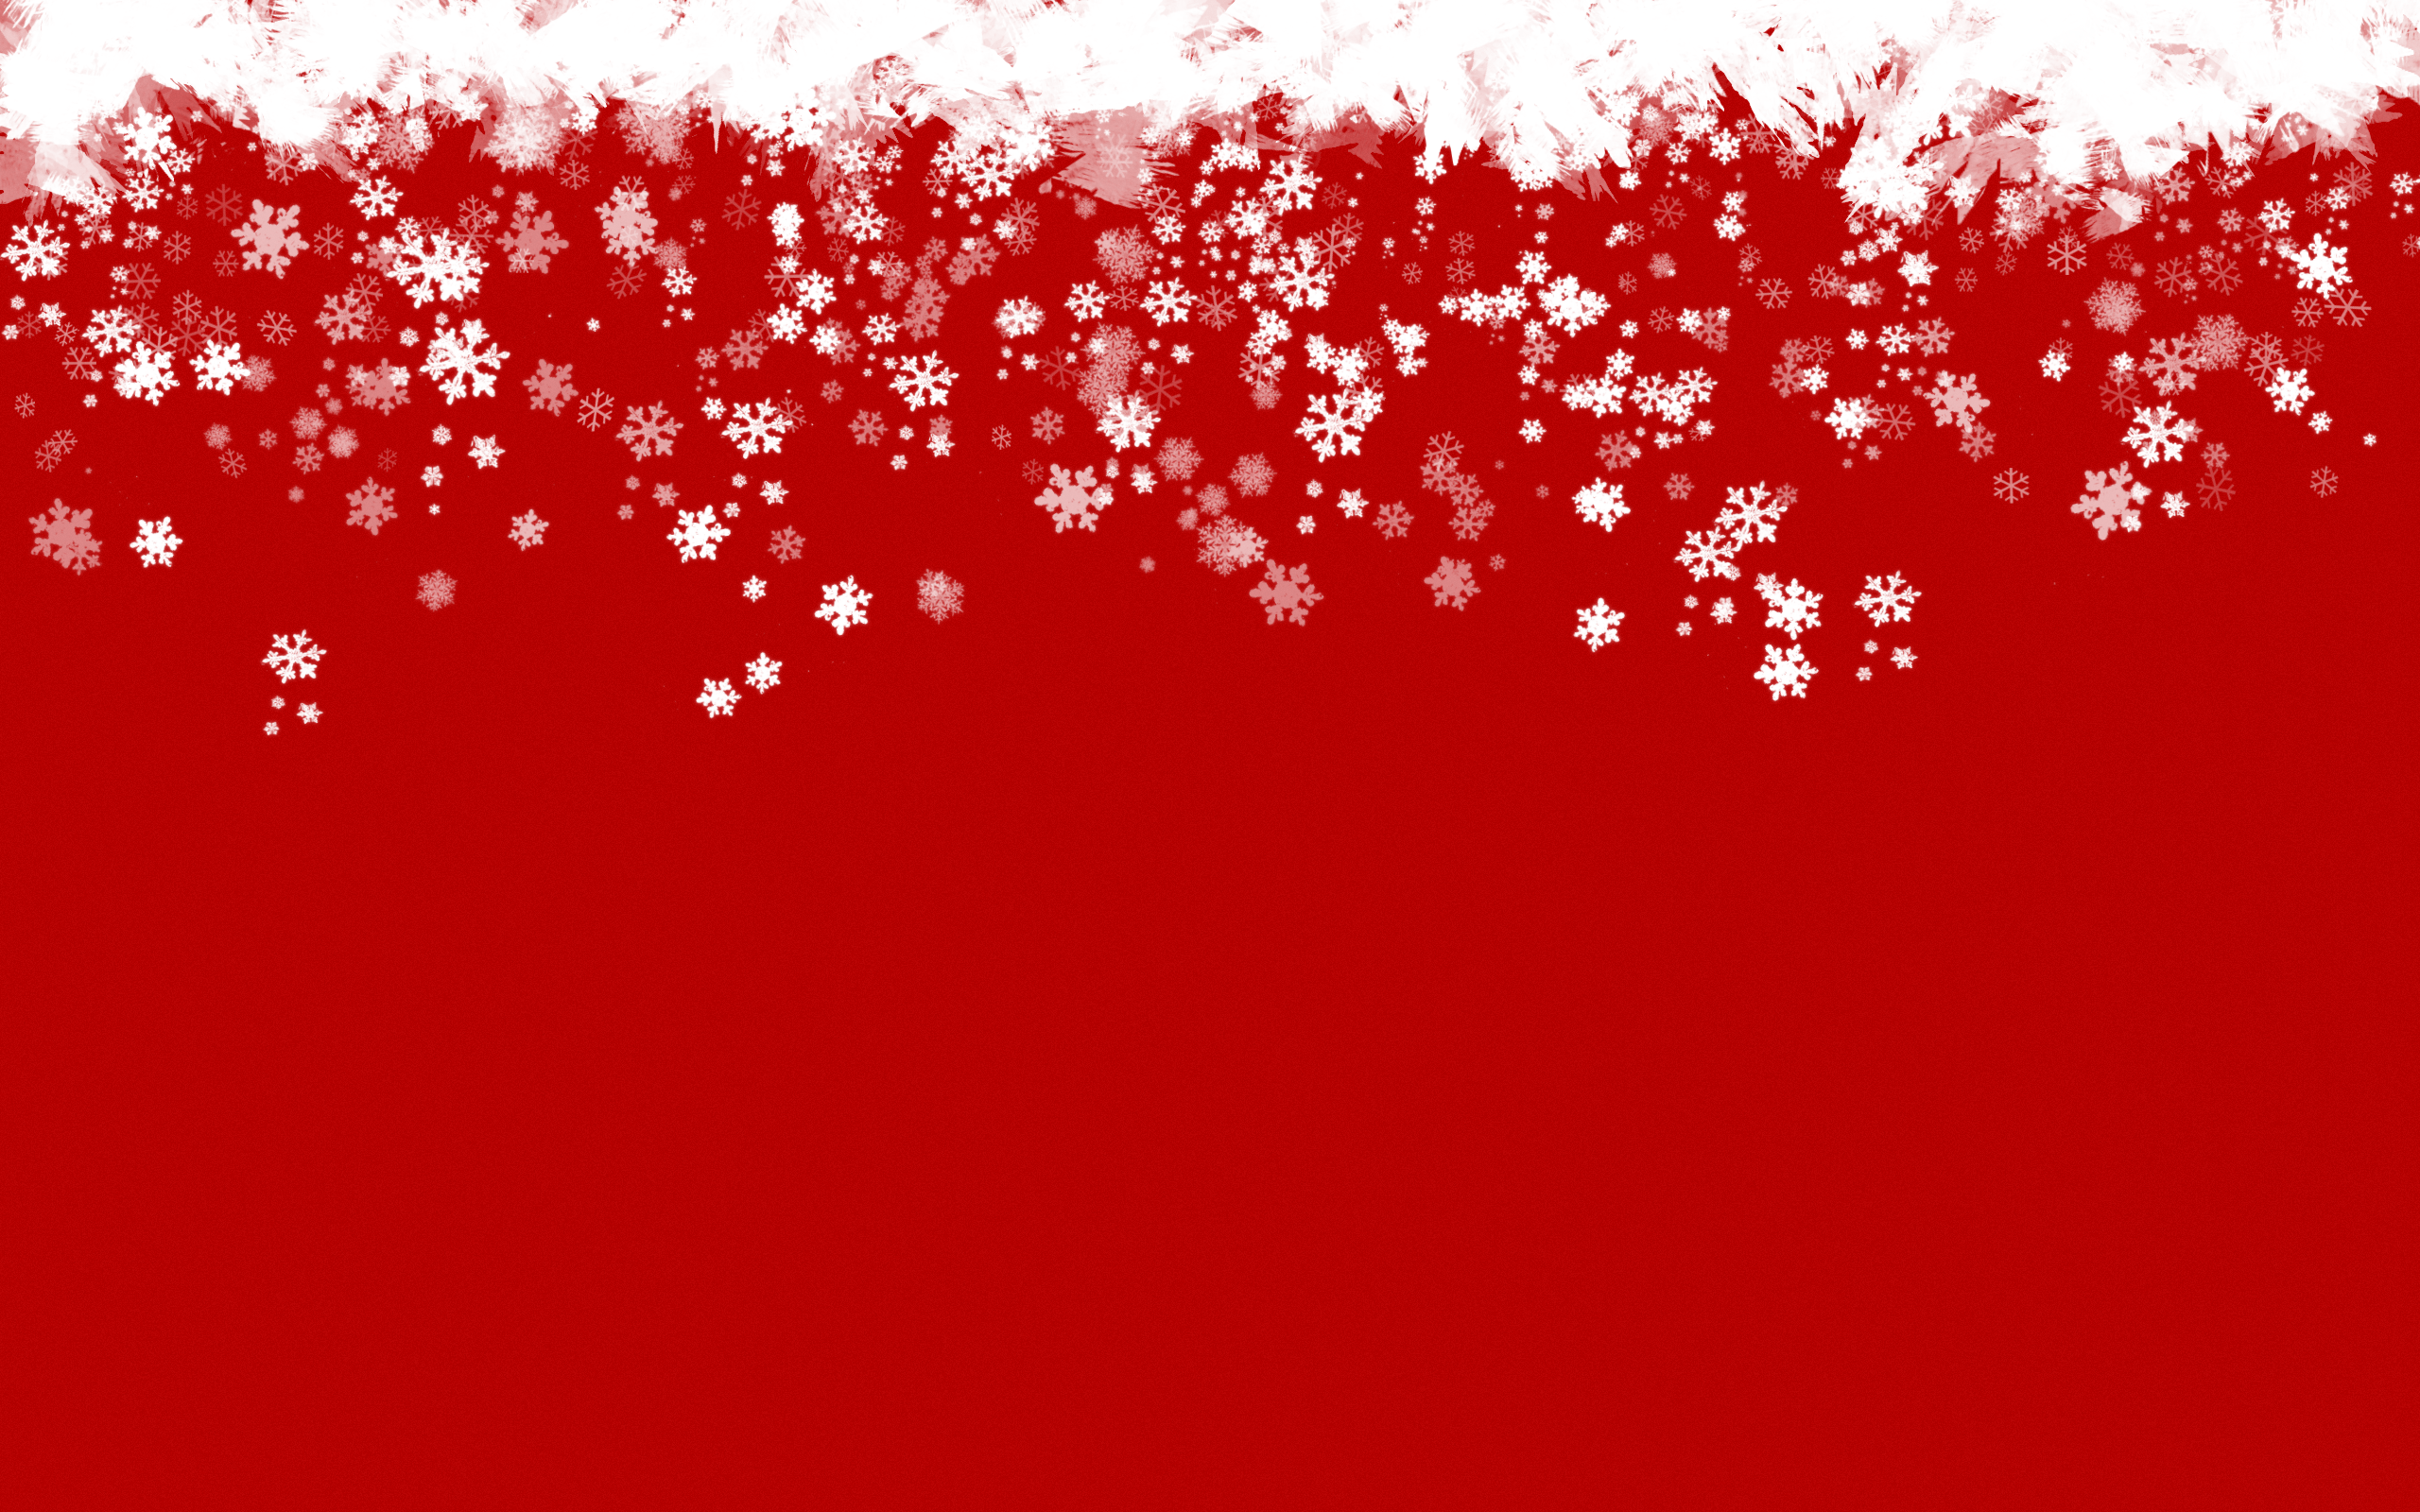 Red snowflake widescreen wallpaper px